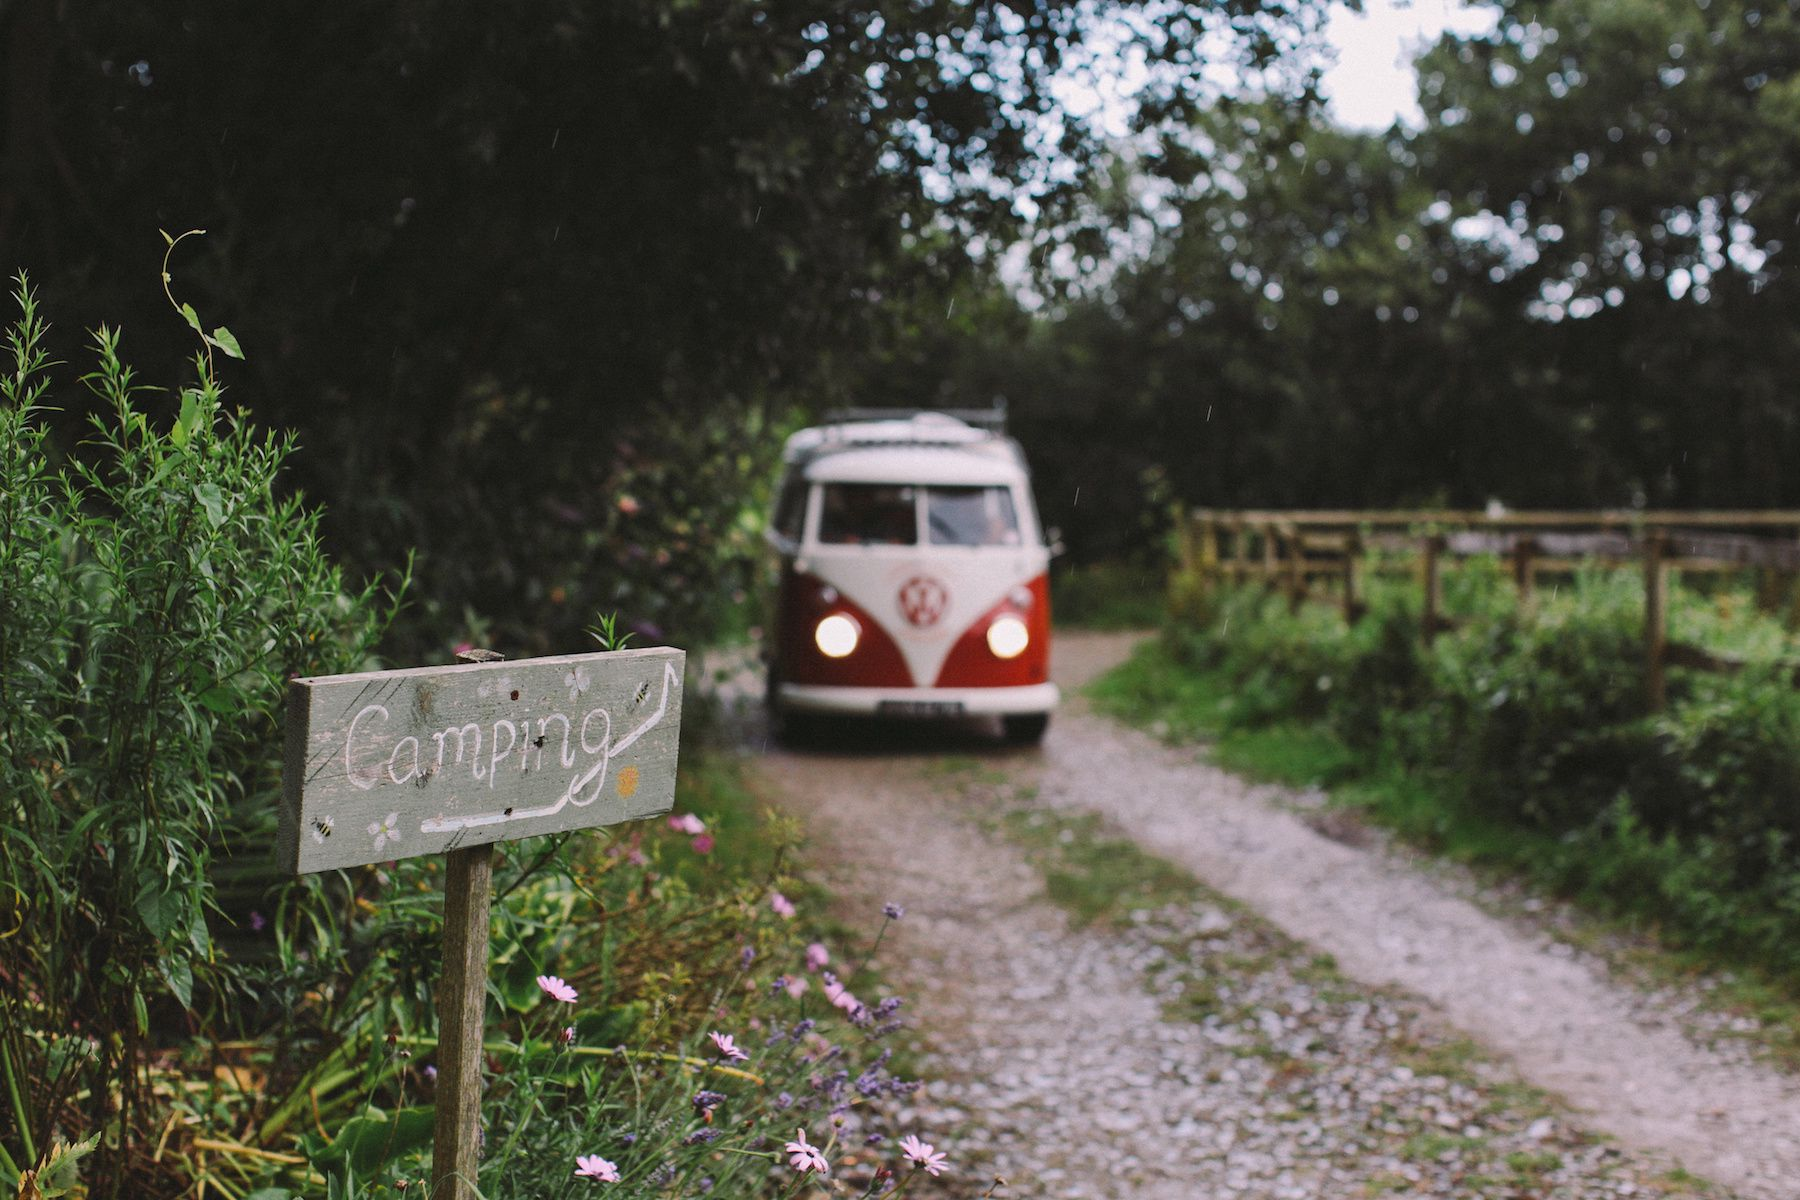 Campsites in St. Austell – Cool Camping